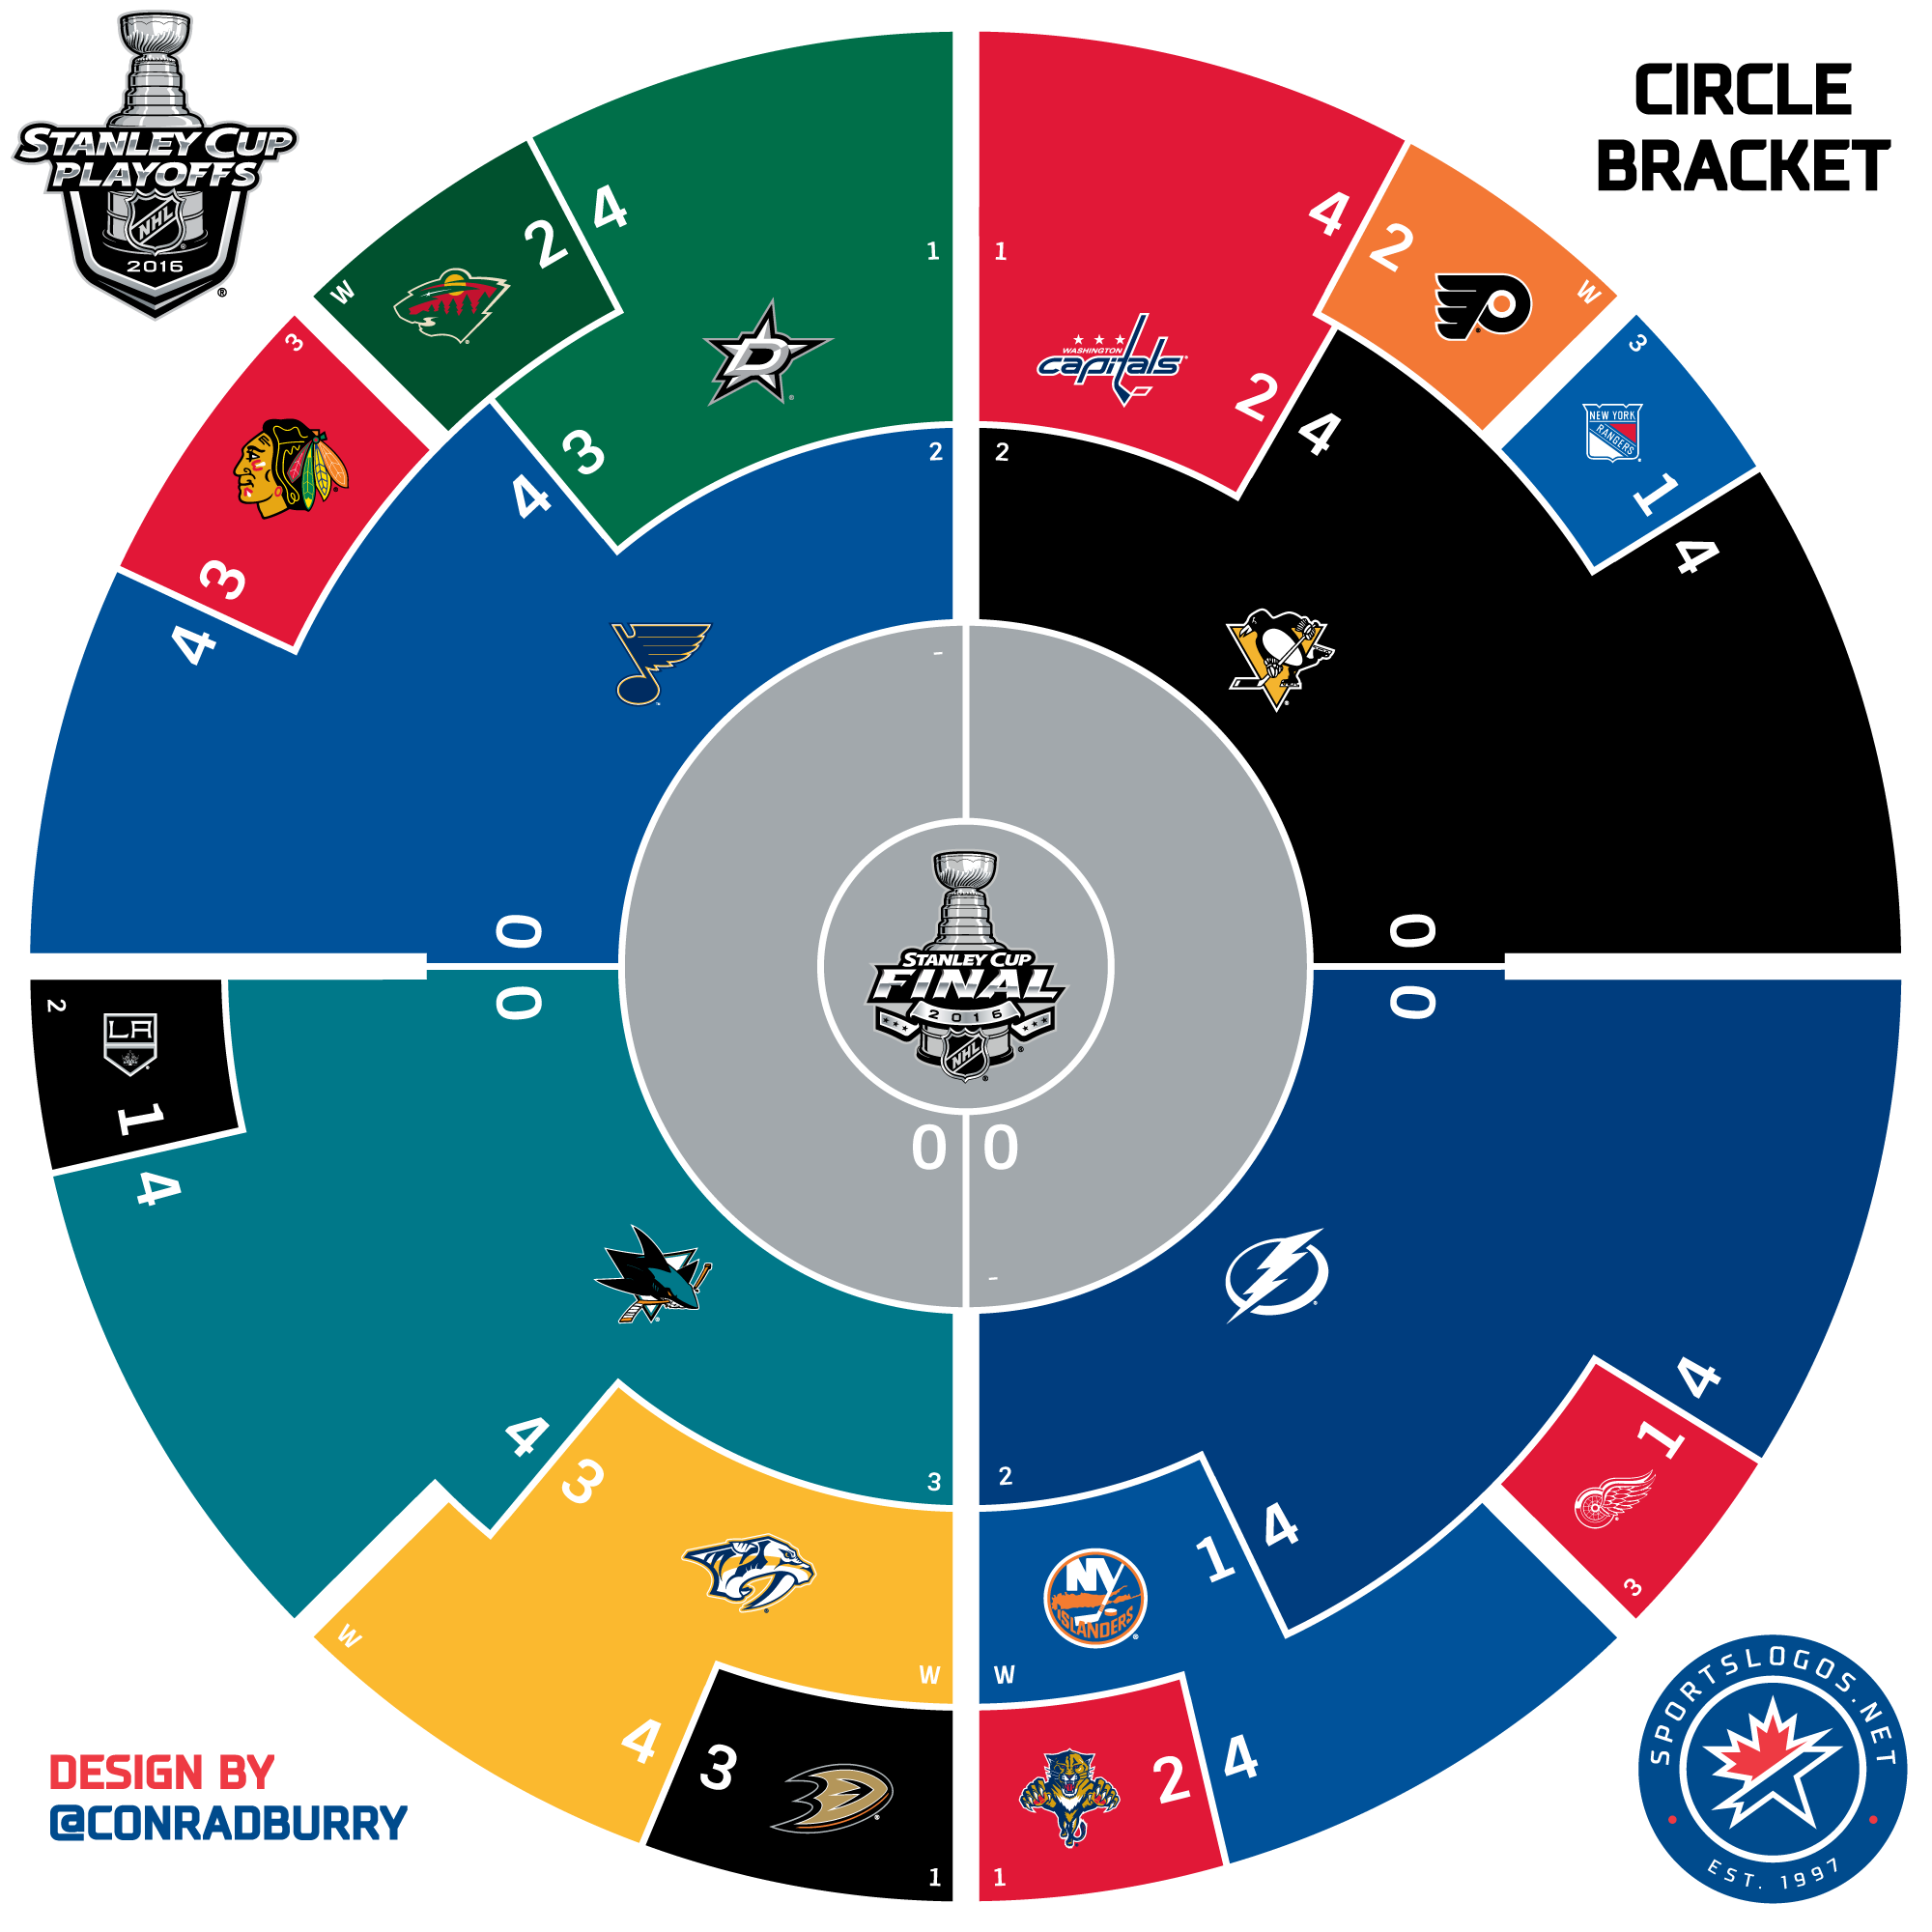 2016 Nhl Playoffs Circle Bracket Conference Finals Chris